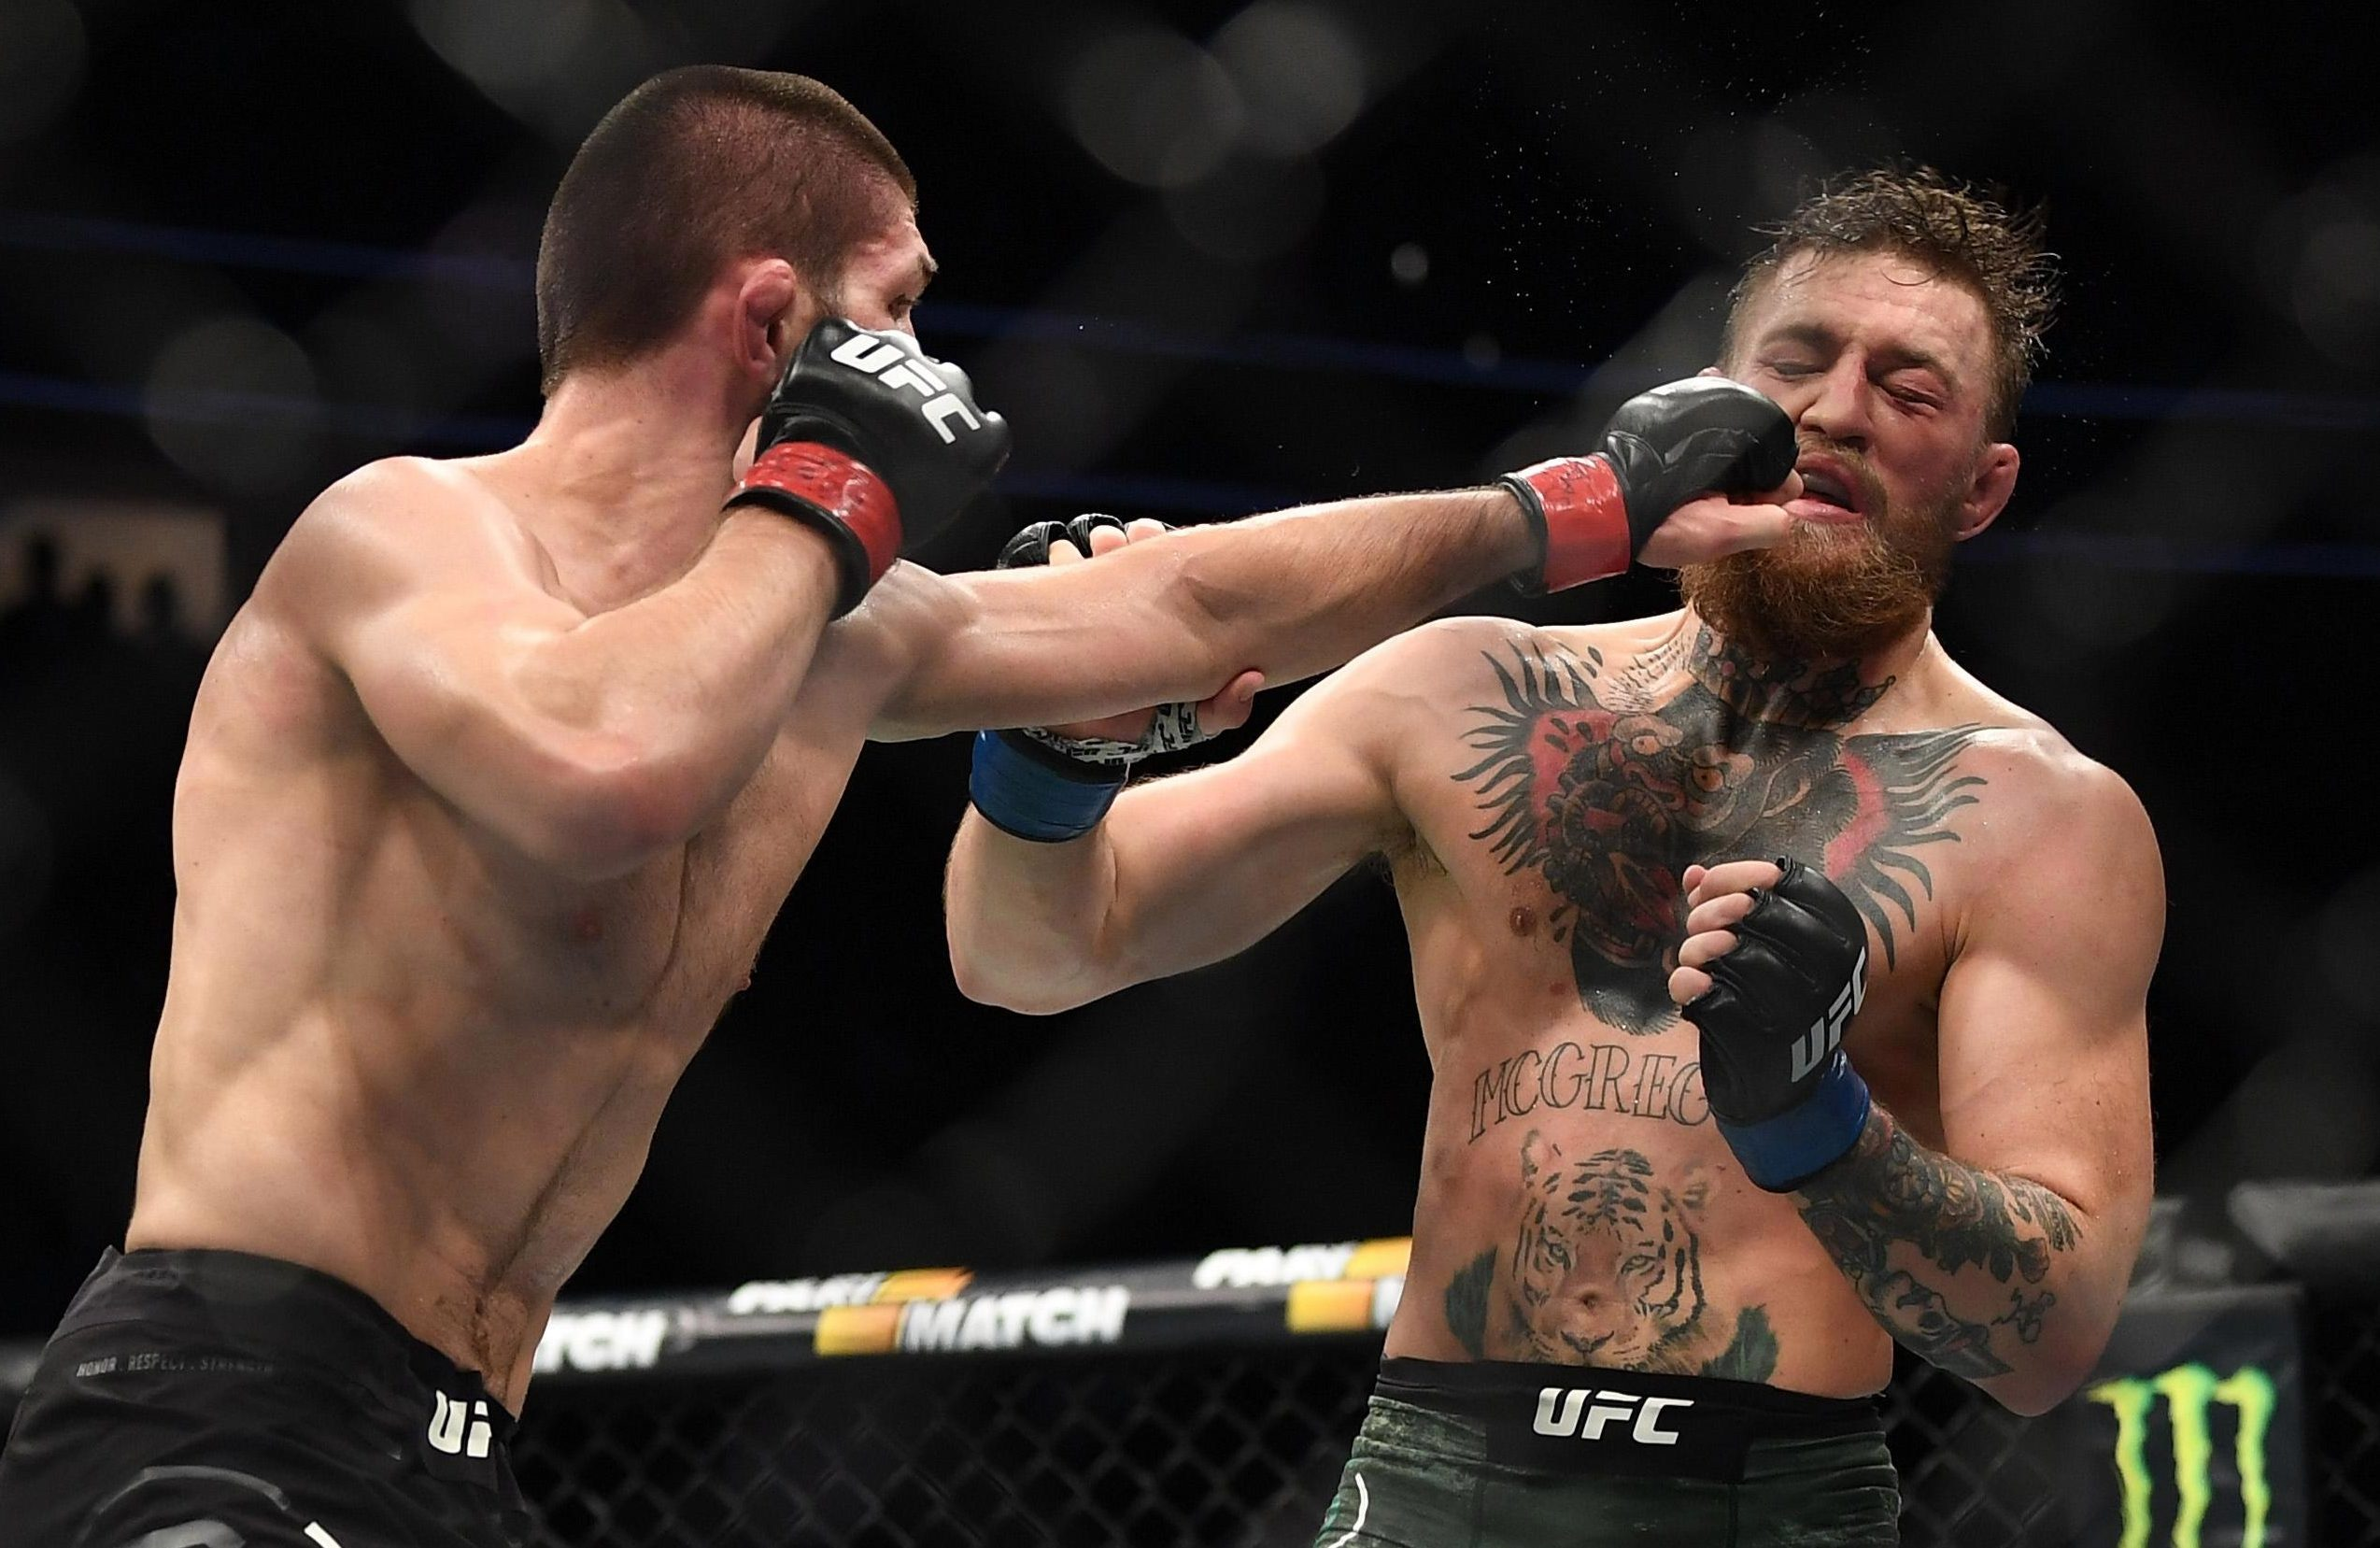 Conor McGregor was taught a lesson in the octagon by Khabib Nurmagomedov at the weekend